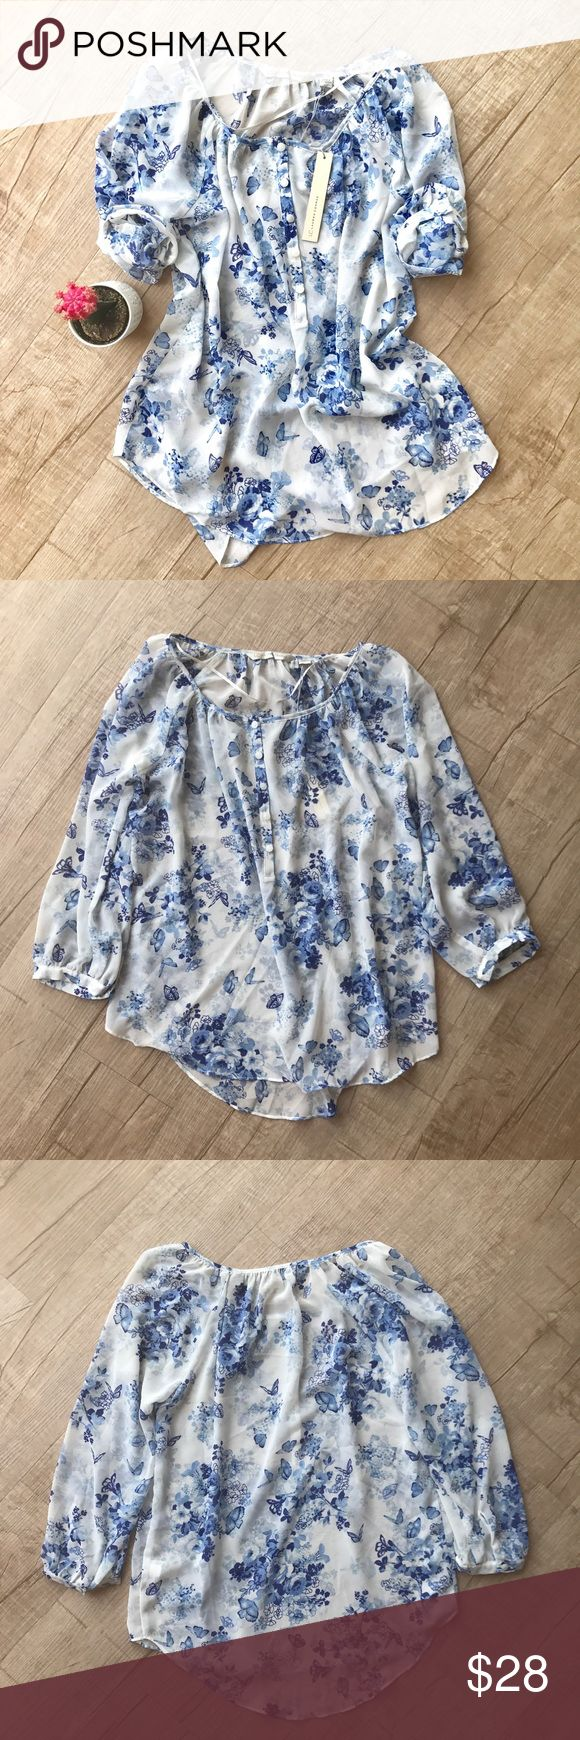 """Lauren Conrad Sheer Floral Print Peasant Blouse * LC Lauren Conrad Sheer Floral & Butterfly Printed Peasant Blouse * white with blue accents  * half button closure at front  * BUST (laid flat, on one side) - 19"""" * LENGTH - 25"""" * 100% Polyester * New with Tags  * no trades/paypal/off cite transactions * all measurements are approximate LC Lauren Conrad Tops Blouses"""